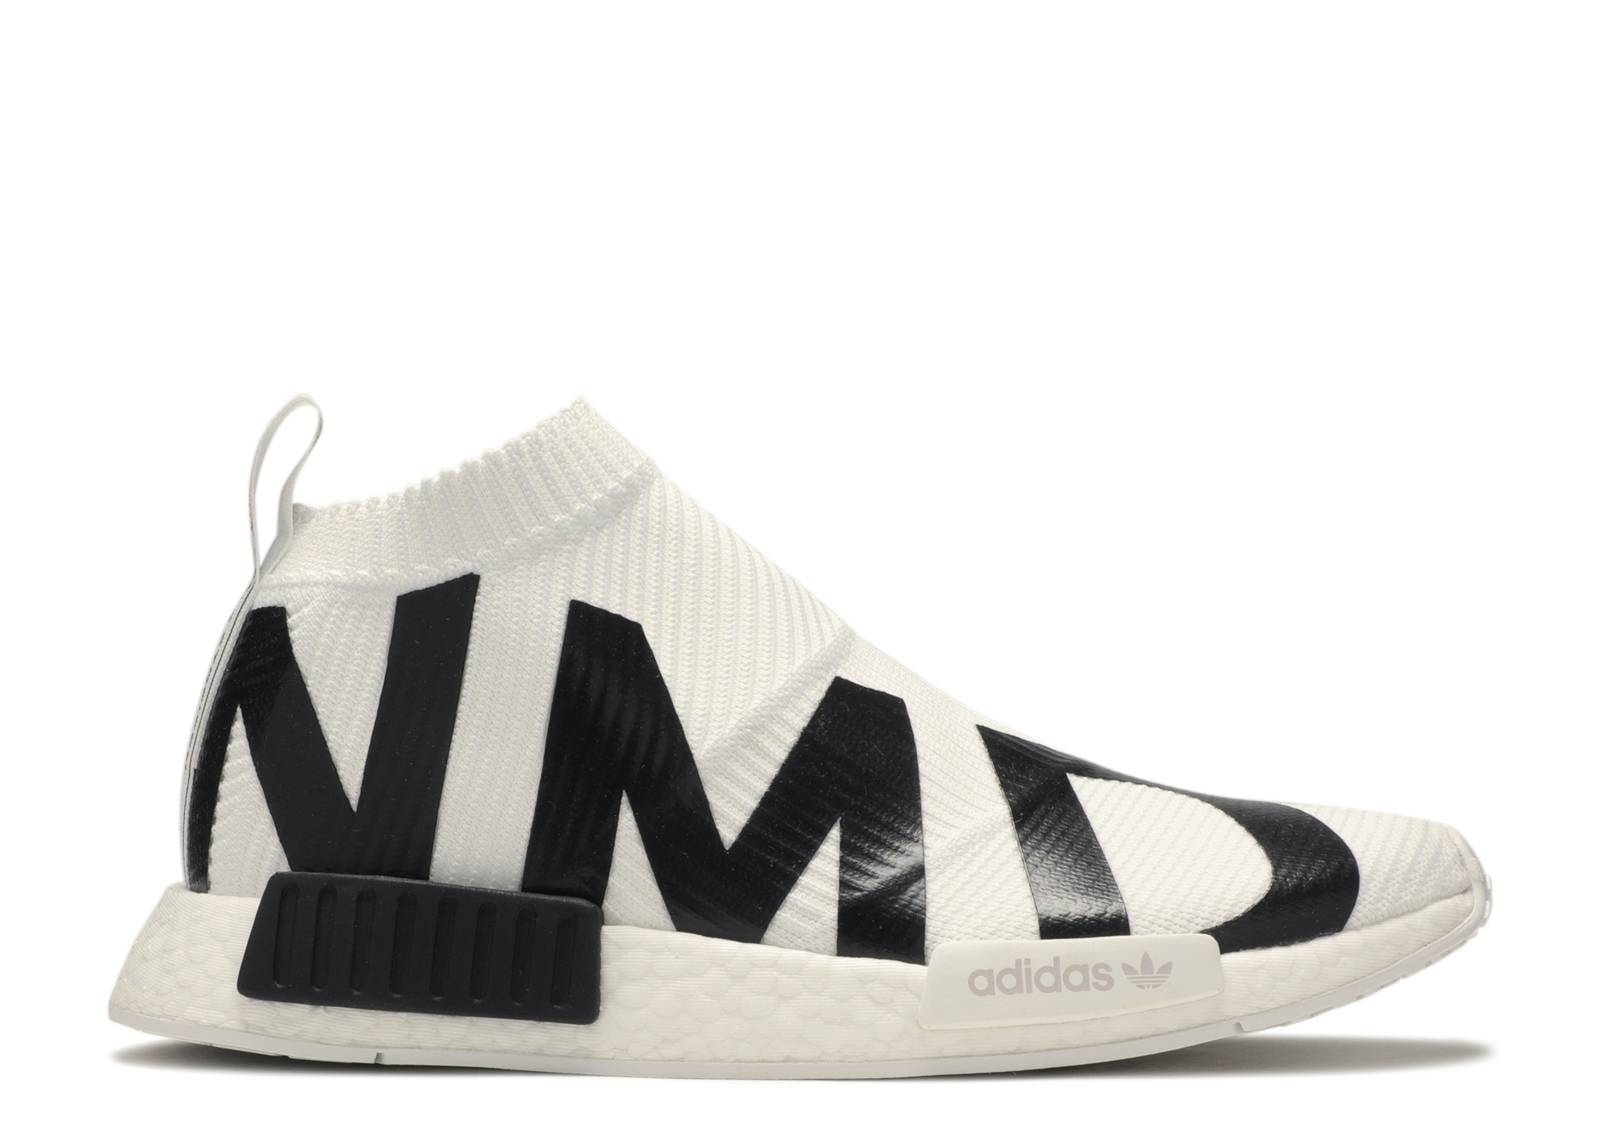 Nmd R1 Primeknit Adidas Nmd Boost For Sale Adidas NMD_CS1